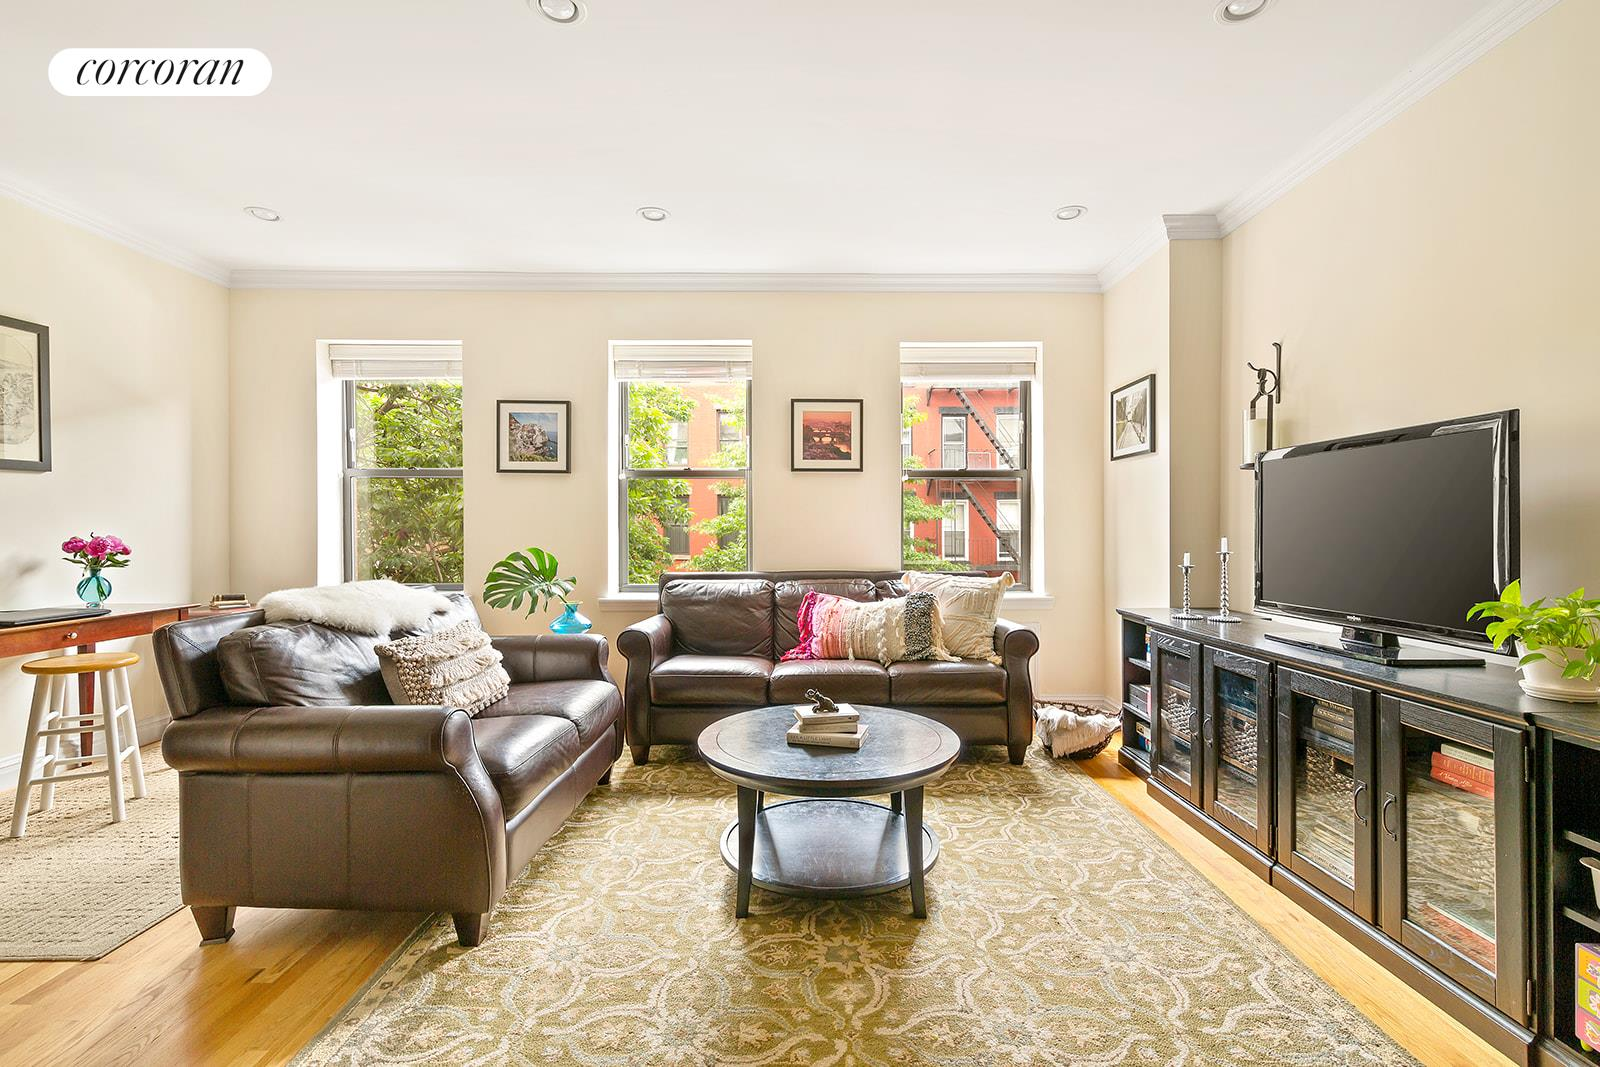 691 Sackett Street, 2, Living Room with Home Office